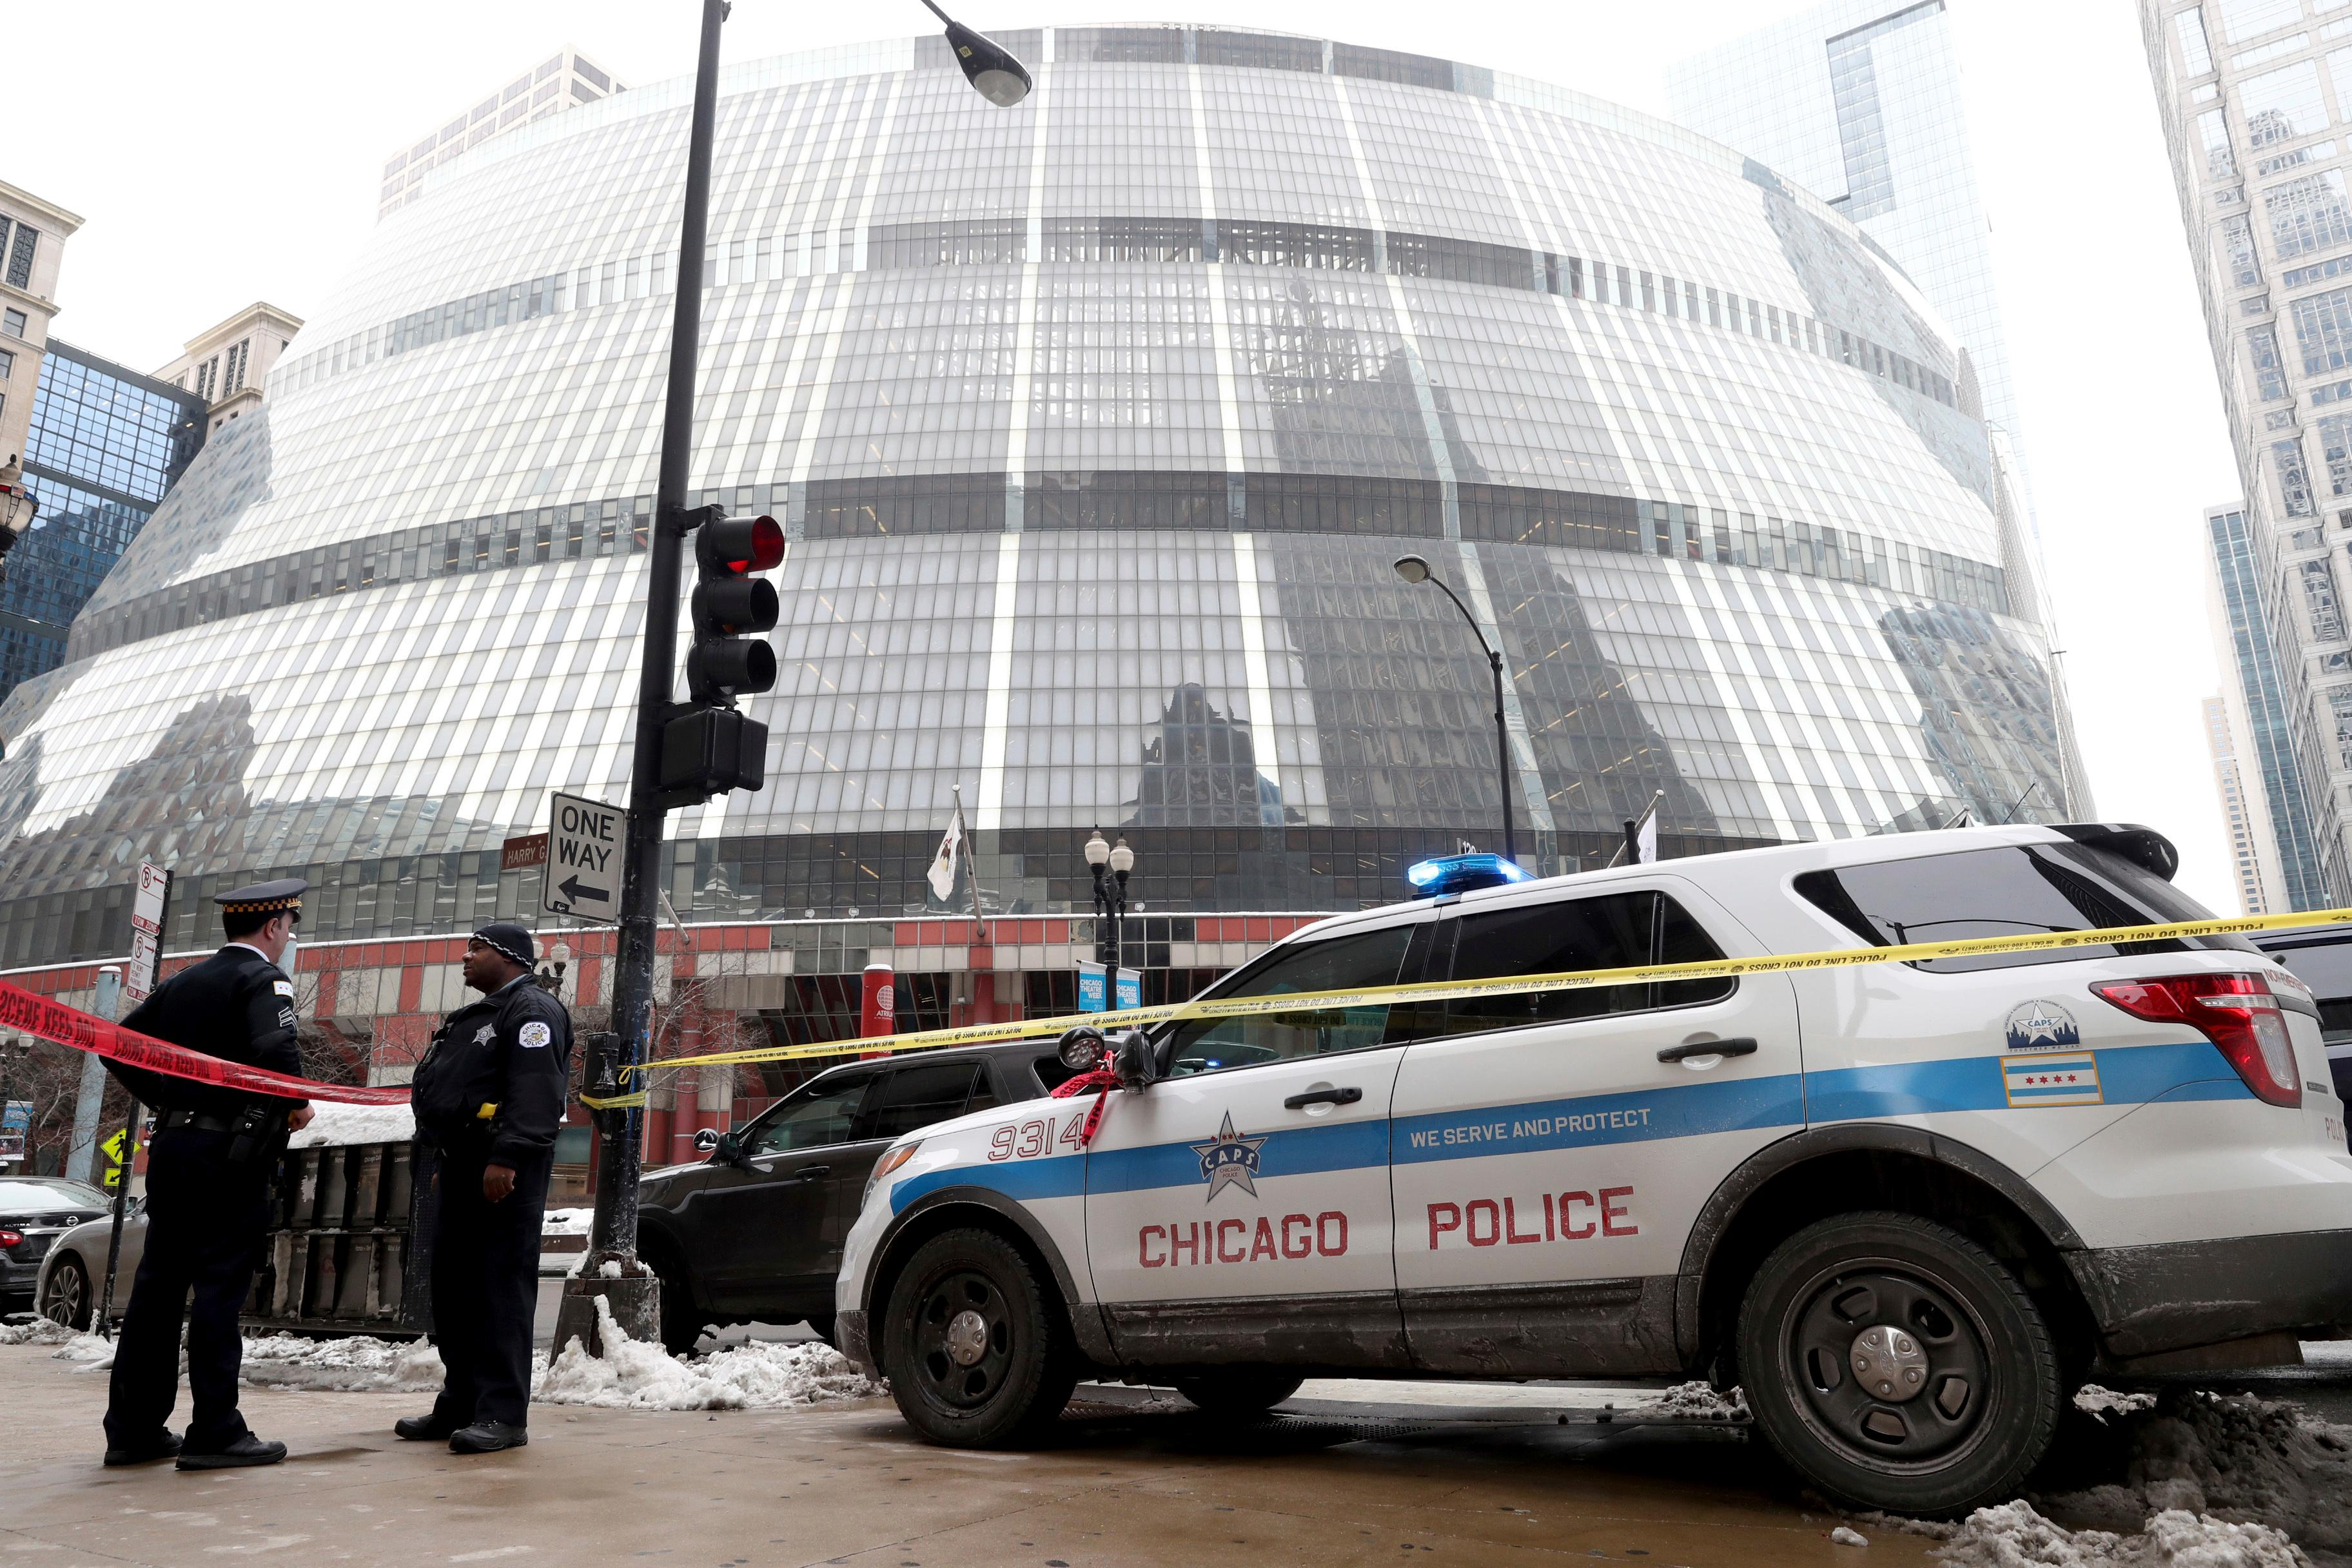 Police guard the crime scene after an off-duty Chicago police officer was shot at the James R. Thompson Center, in Chicago, Tuesday, Feb. 13, 2018. Spokesman Anthony Guglielmi says the off-duty officer was shot around 2 p.m. Tuesday at the James R. Thompson Center. Guglielmi says the preliminary information is that the shooting happened